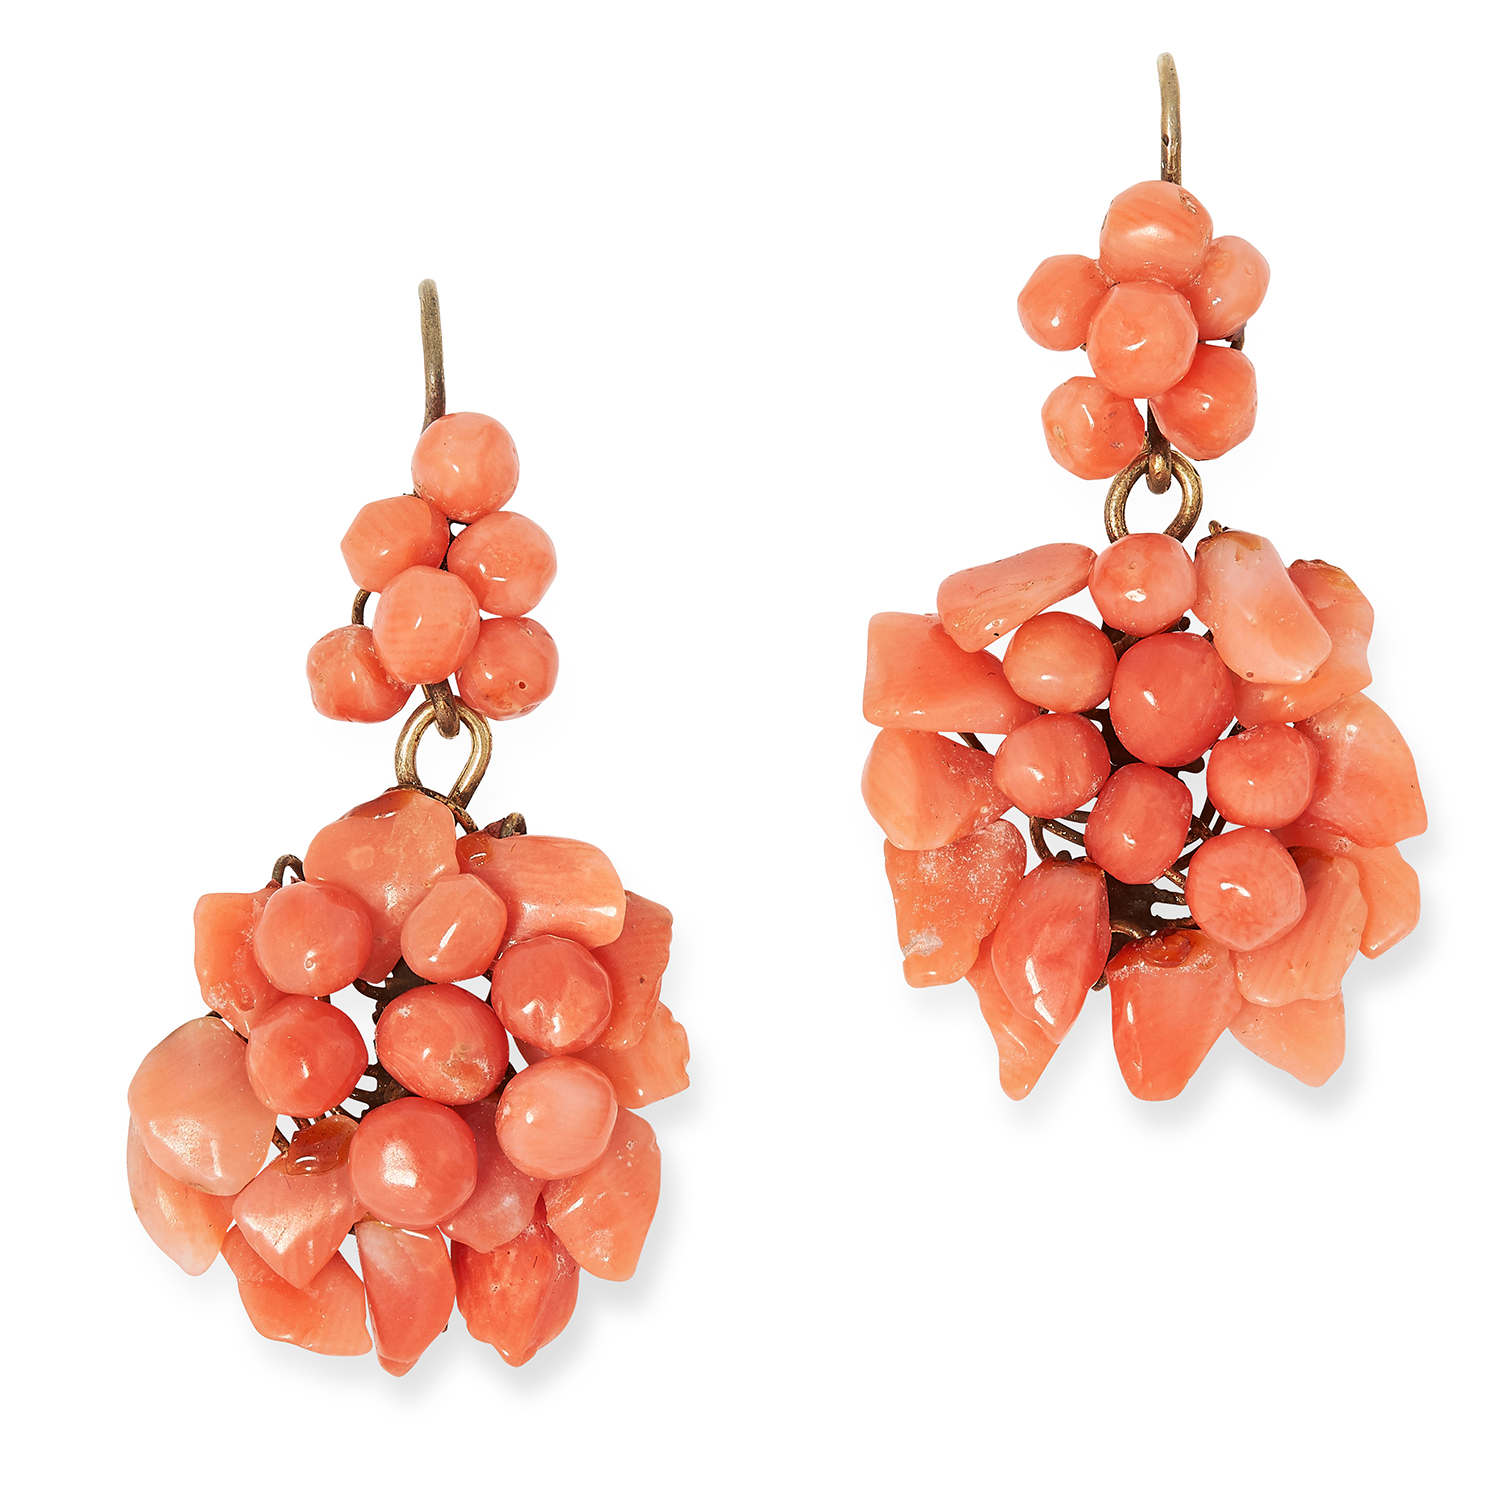 ANTIQUE CORAL EARRINGS in grape vine design set with polished coral, 3.5cm, 4.4g.